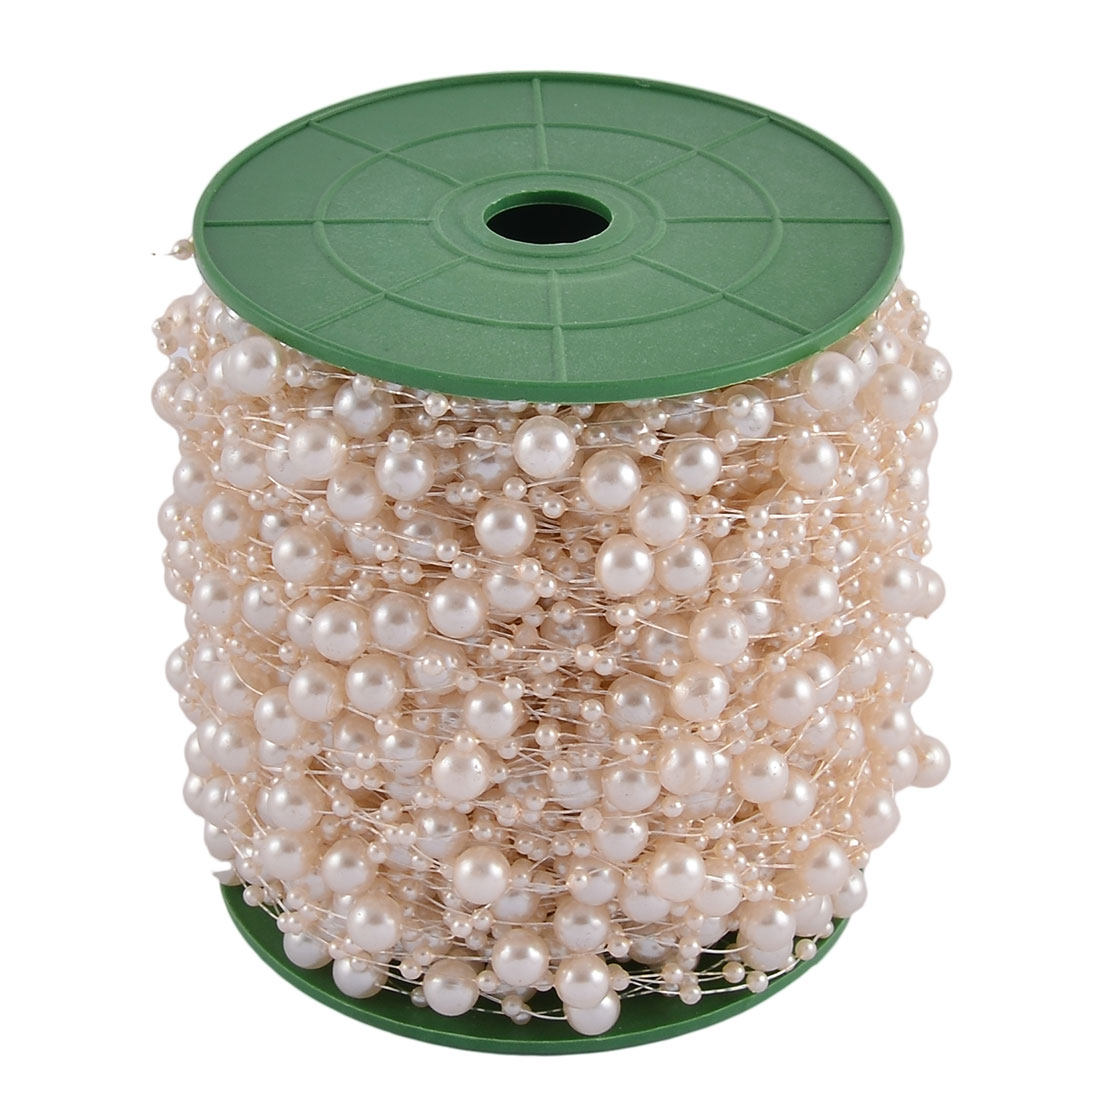 Festival Party Crafting DIY Garland Flower Table Decoration Imitation Pearl Beads String Roll Off White